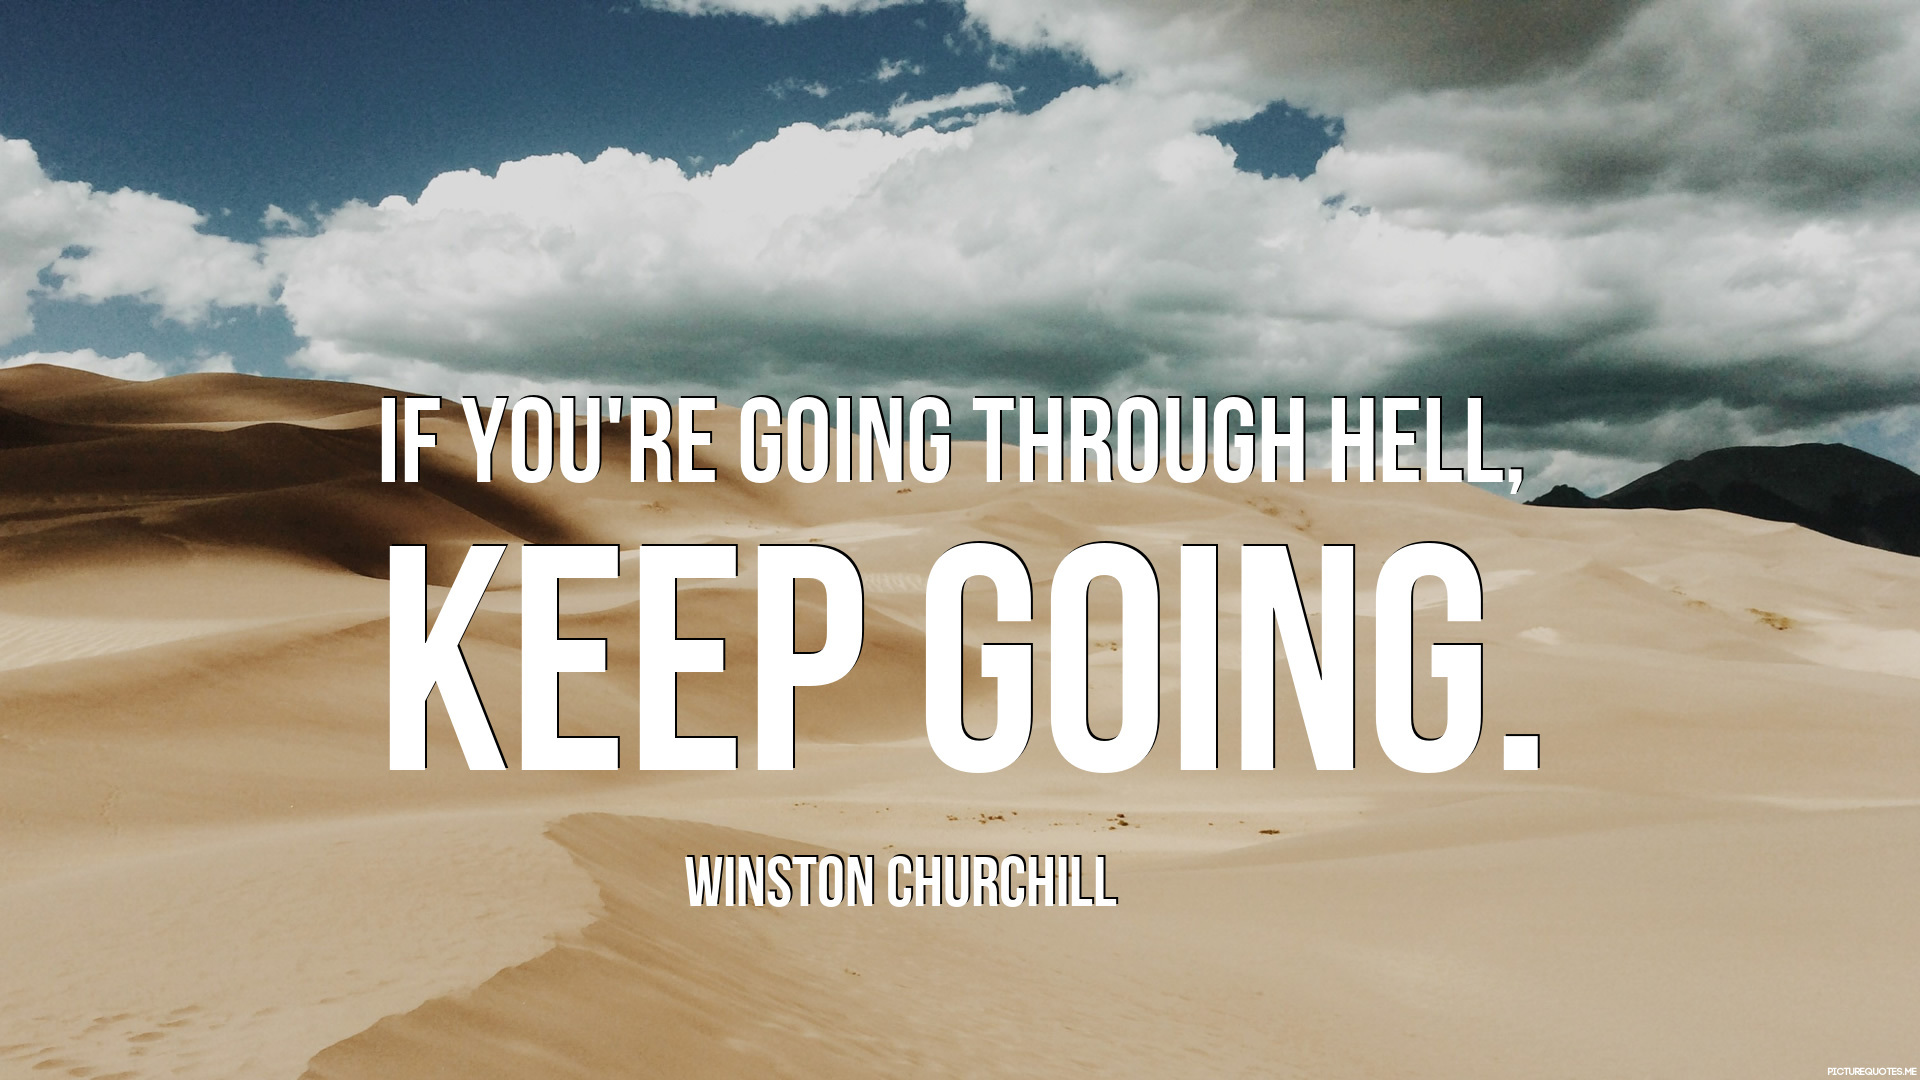 [Image] Whenever I feel like giving up